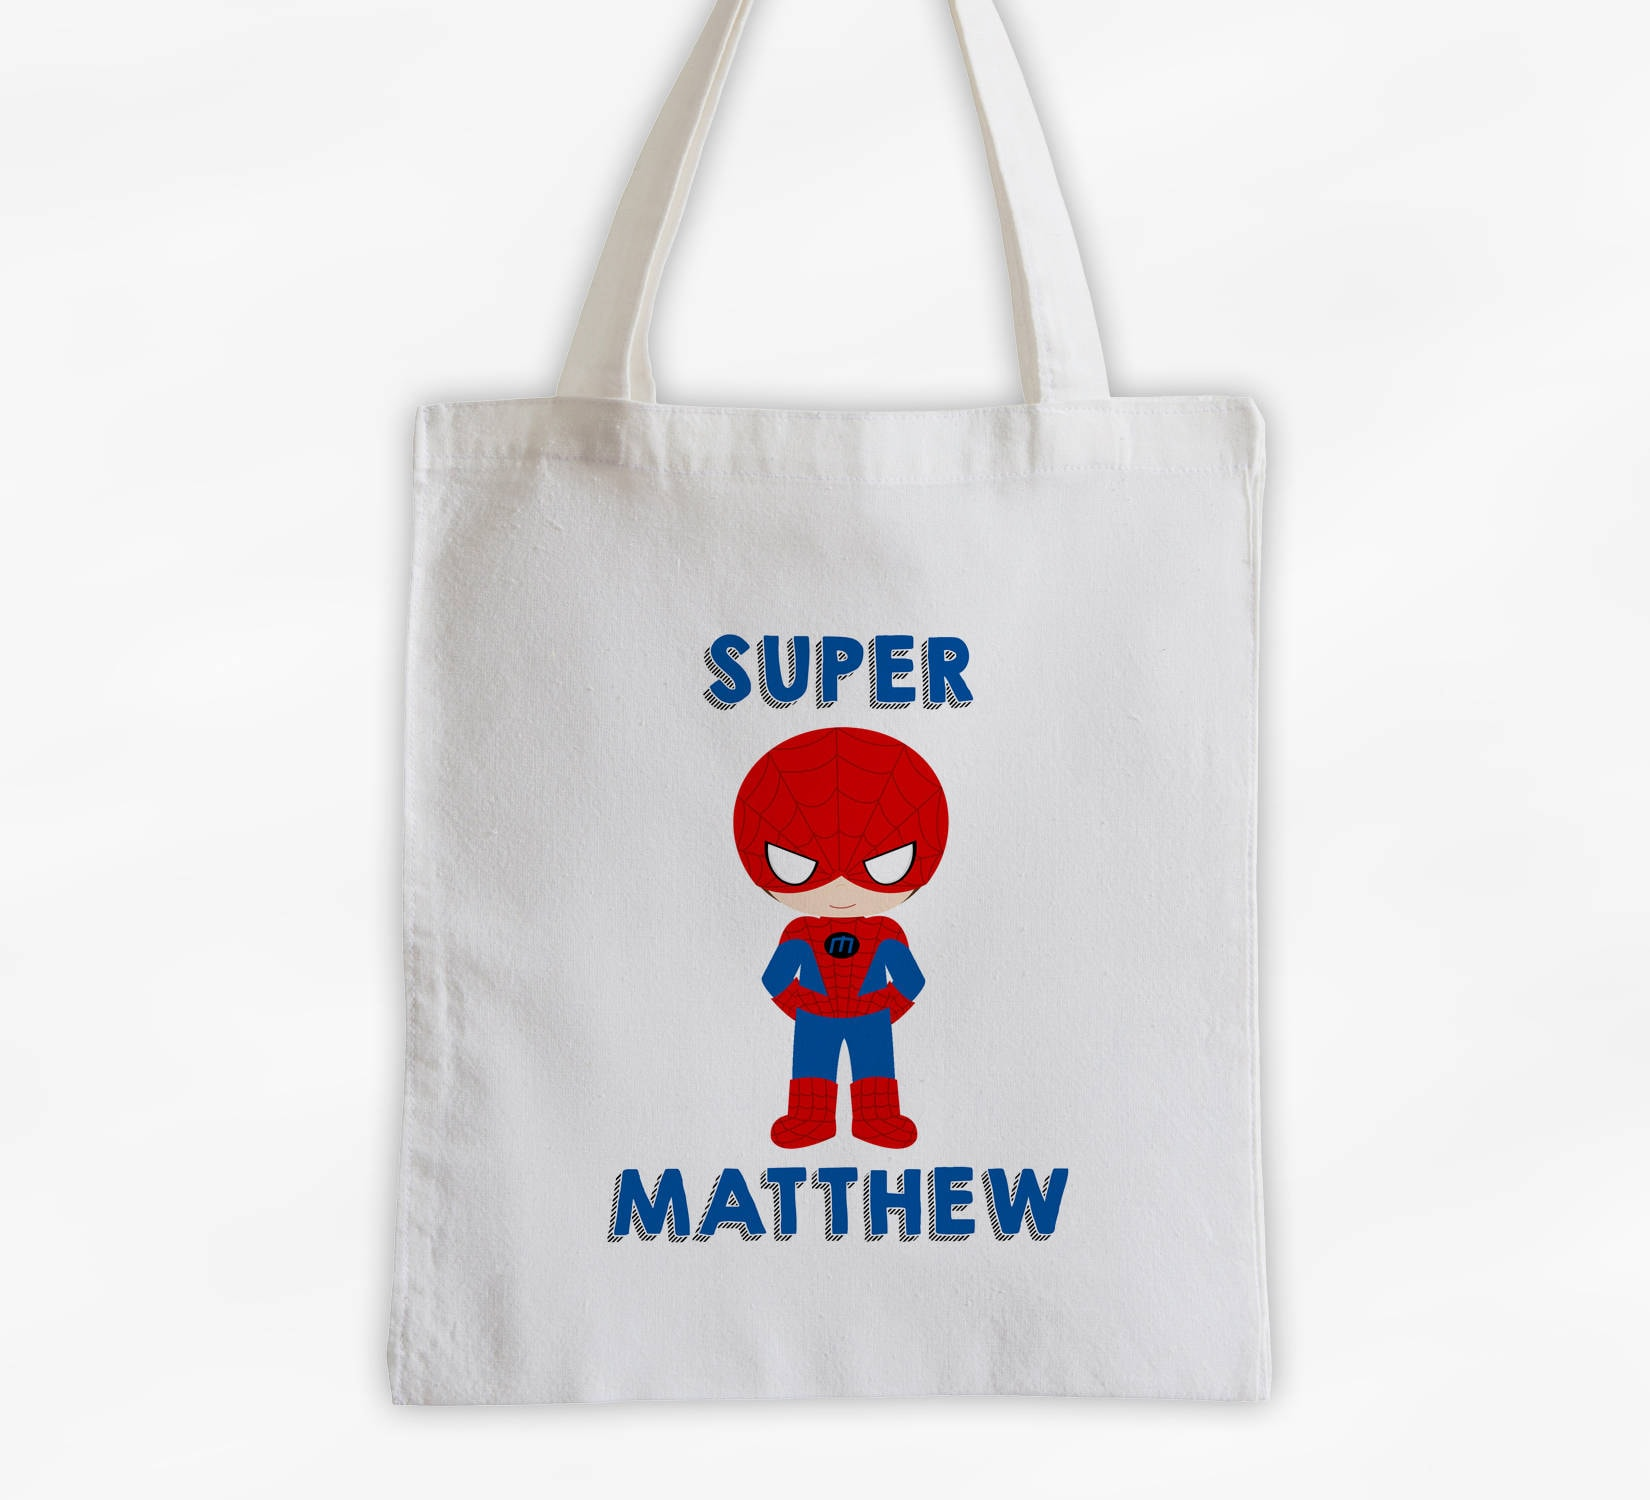 Superhero Canvas Tote Bag - Spider Kid Personalized Comic Book ... f5cdf661f747e